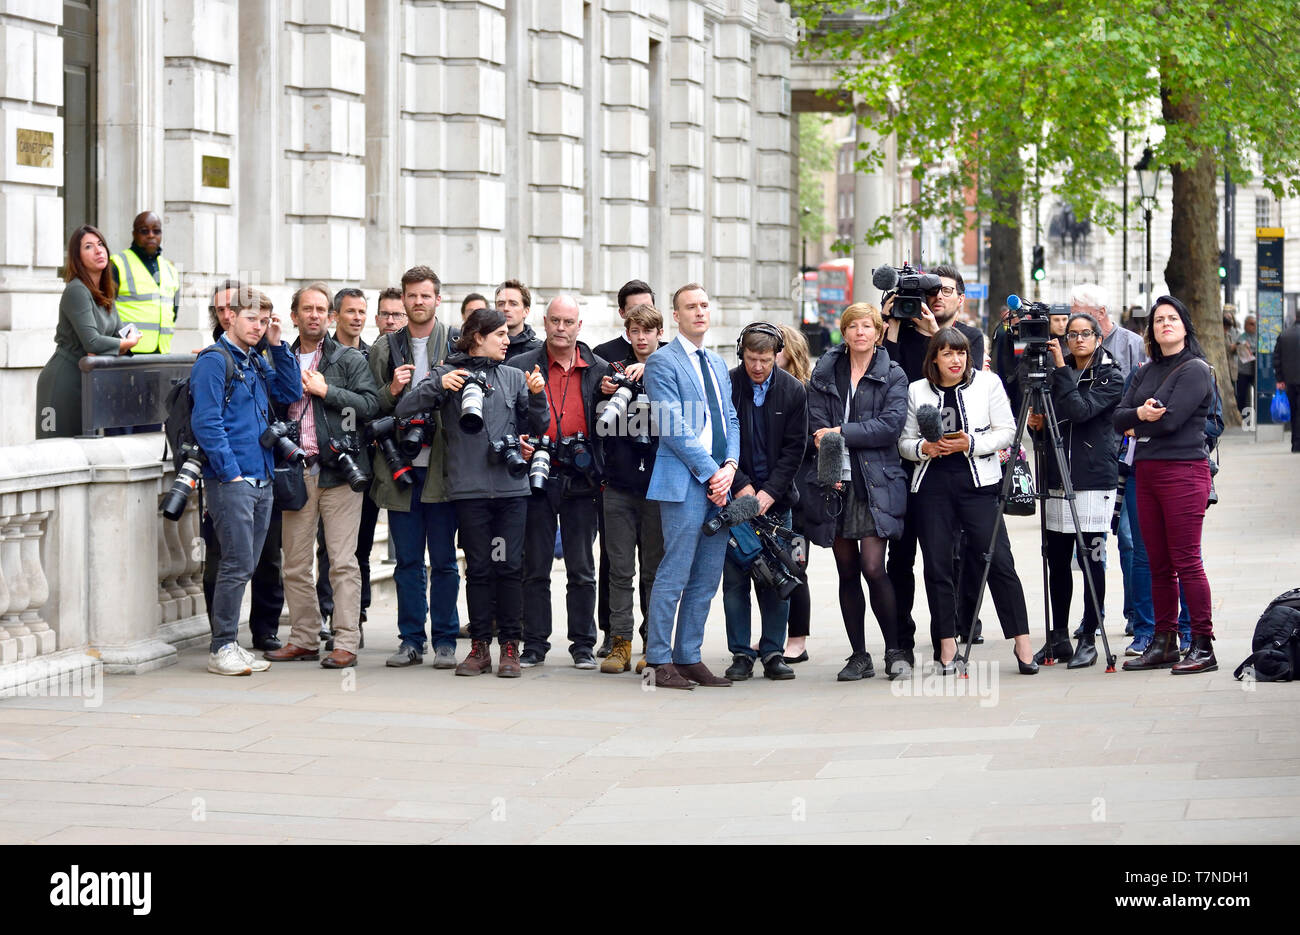 london-england-uk-members-of-the-media-photographers-and-tv-crews-waiting-outside-the-cabinet-office-in-whitehall-for-the-arrival-of-labours-br-T7NDH1.jpg